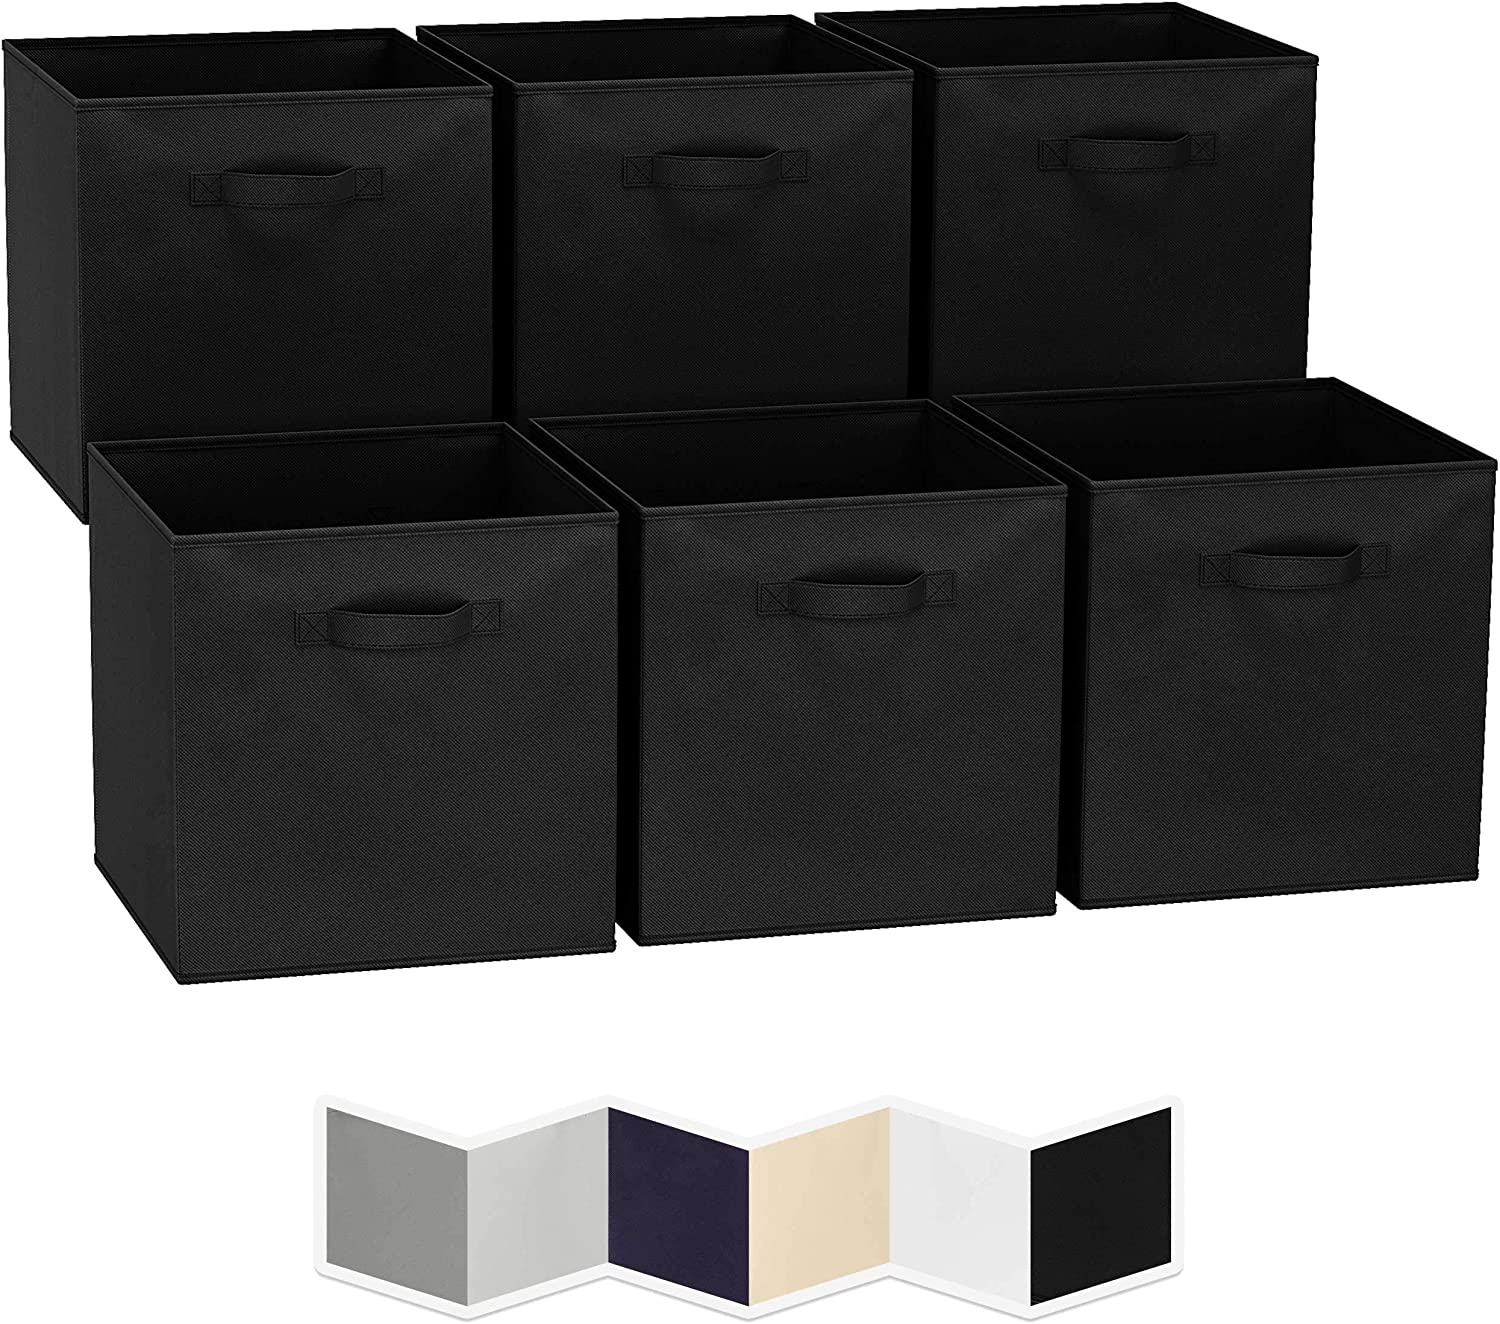 13x13 Large Storage Cubes (Set of 6). Fabric Storage Bins with Dual Handles | Cube Storage Bins for Home and Office | Foldable Cube Baskets For Shelf | Closet Organizers and Storage Box (Black)